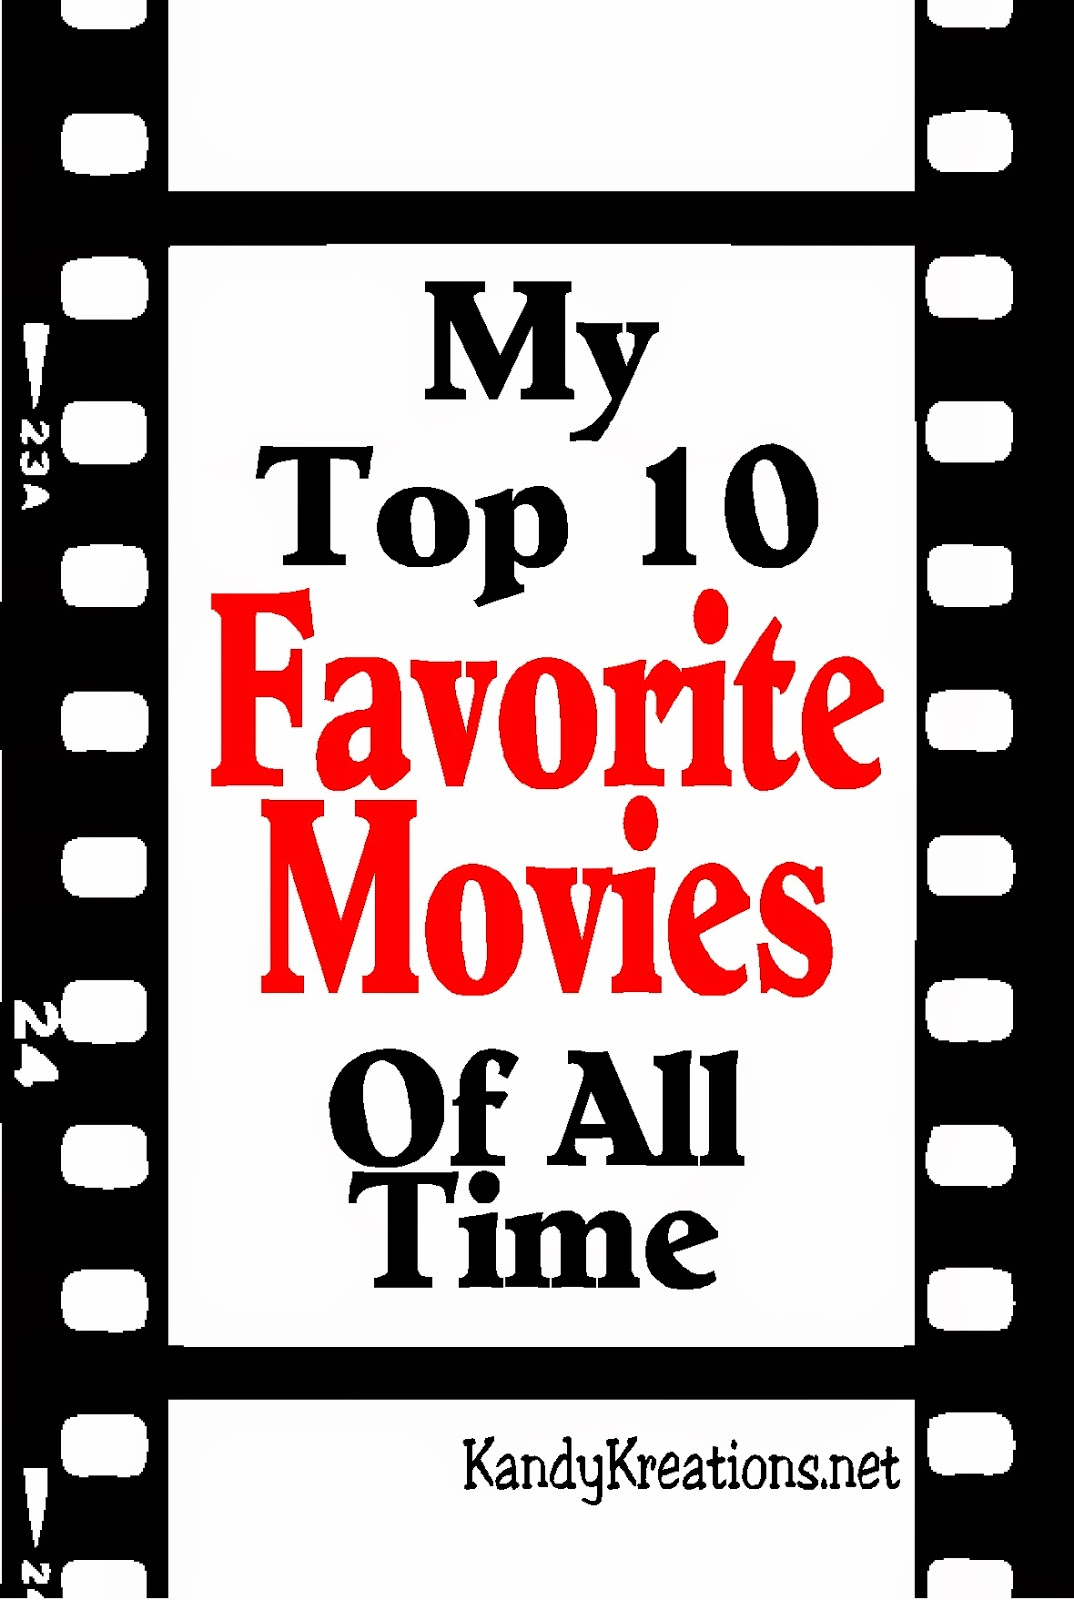 My Top 10 Favorite Movies of All Time by Kandy Kreations